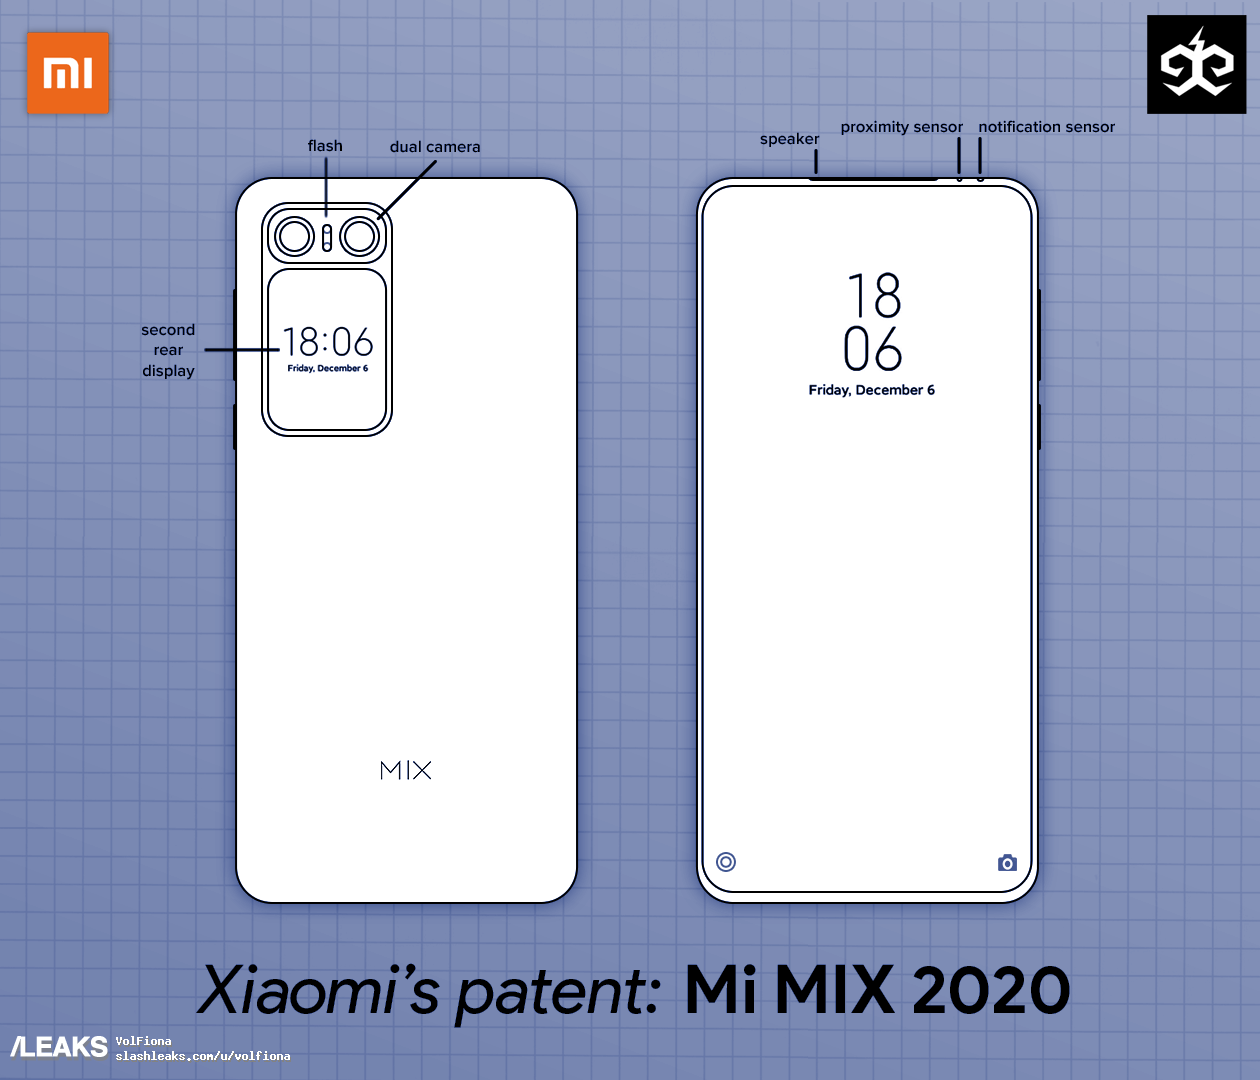 Xiaomi Mi Mix 2020: this is the last patent registered by Xiaomi that could see the light this year